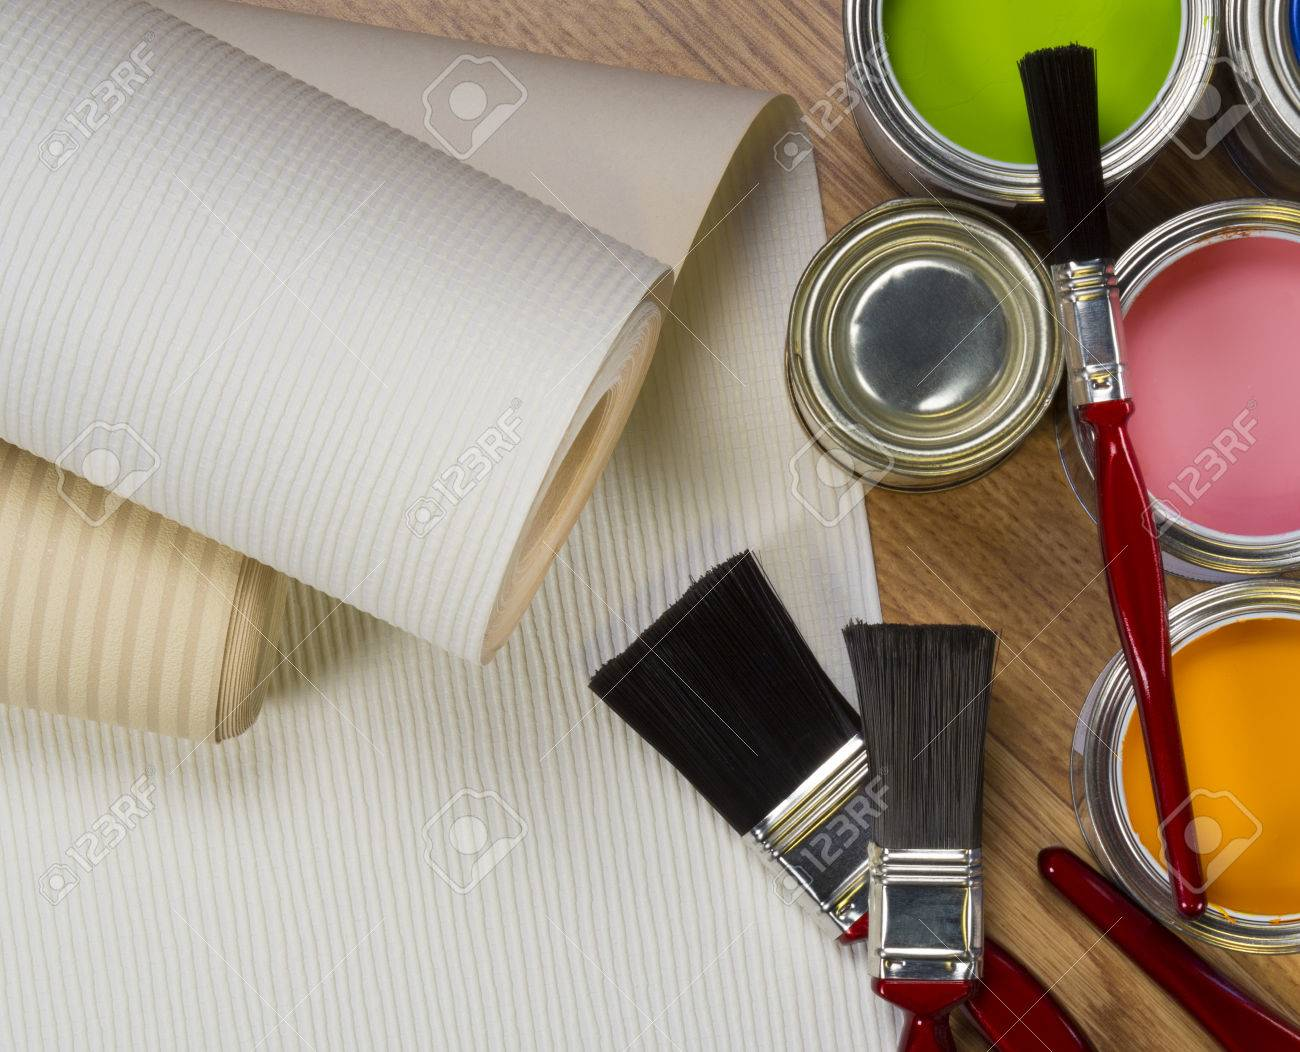 Interior Design - wallpaper and water-based paints used in painting and decorating. - 35873928